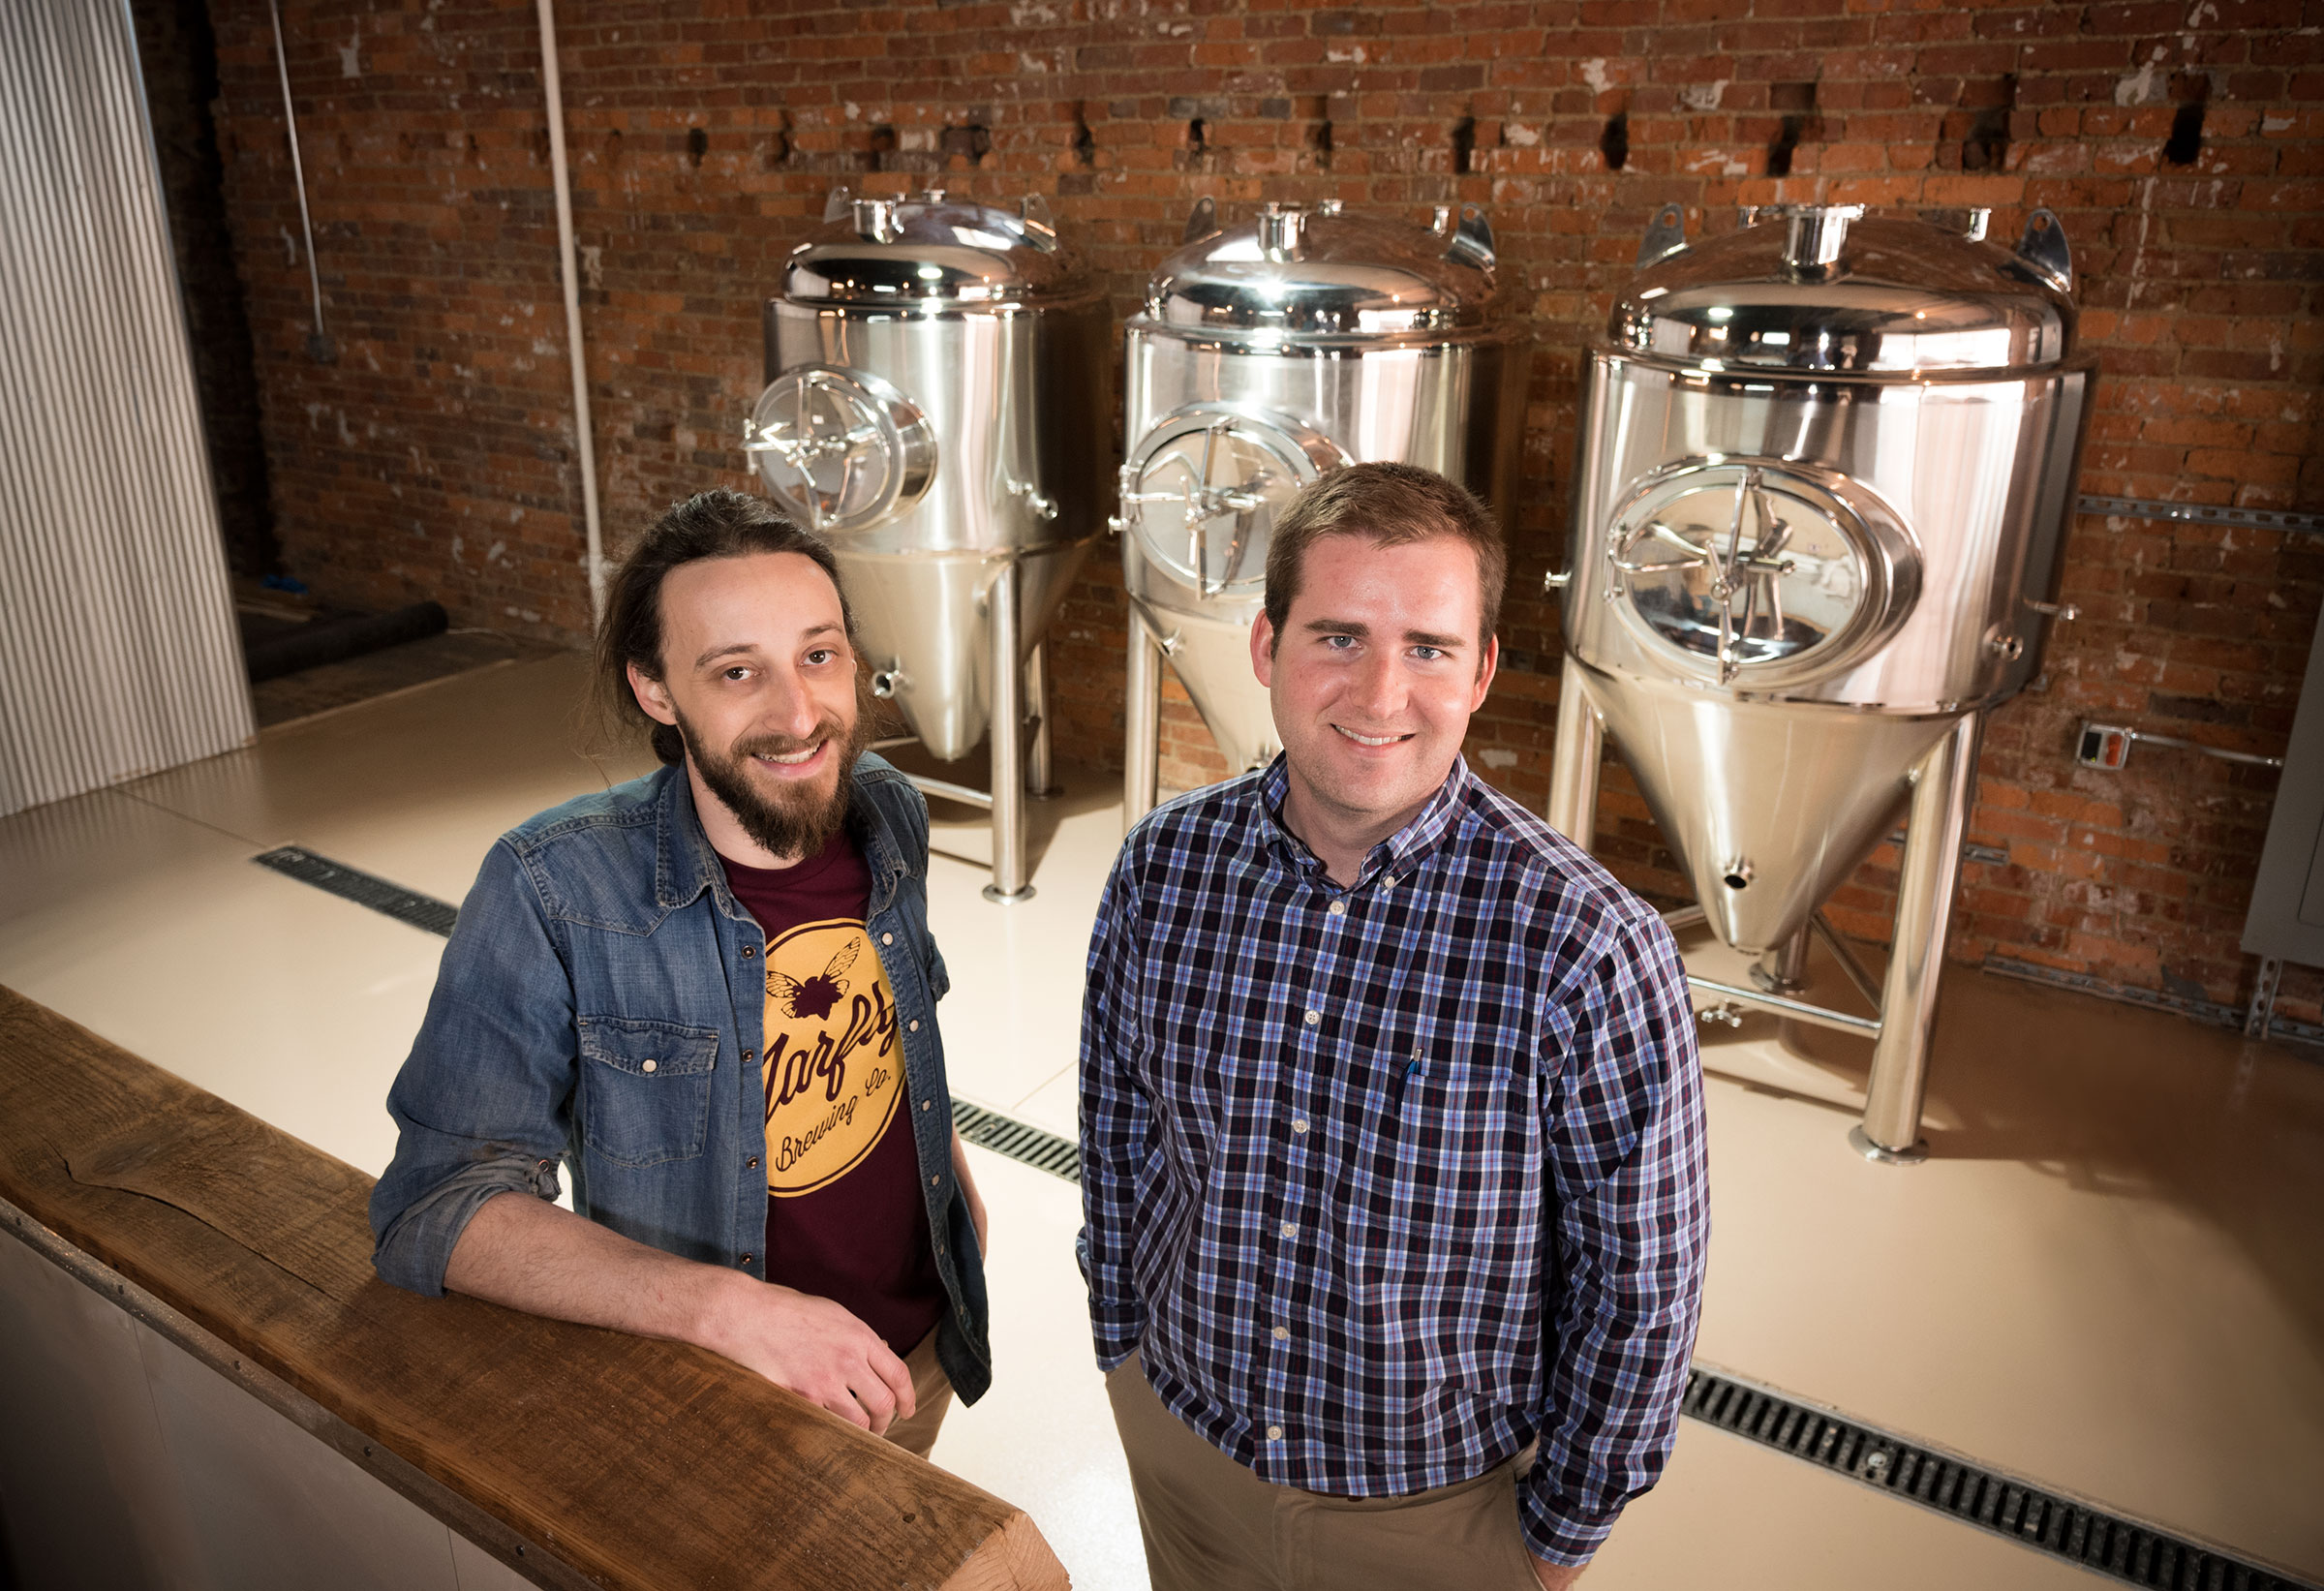 Jarfly Brewing owners Daniel Stroud, left, and Delaney Stephens in front of the four barrel fermentation system installed Sunday at the brewery, located on West Mount Vernon Street in Somerset. The building housed Somerset's premier furniture store, Goldenberg Furniture, for 105 years (Photo Provided)